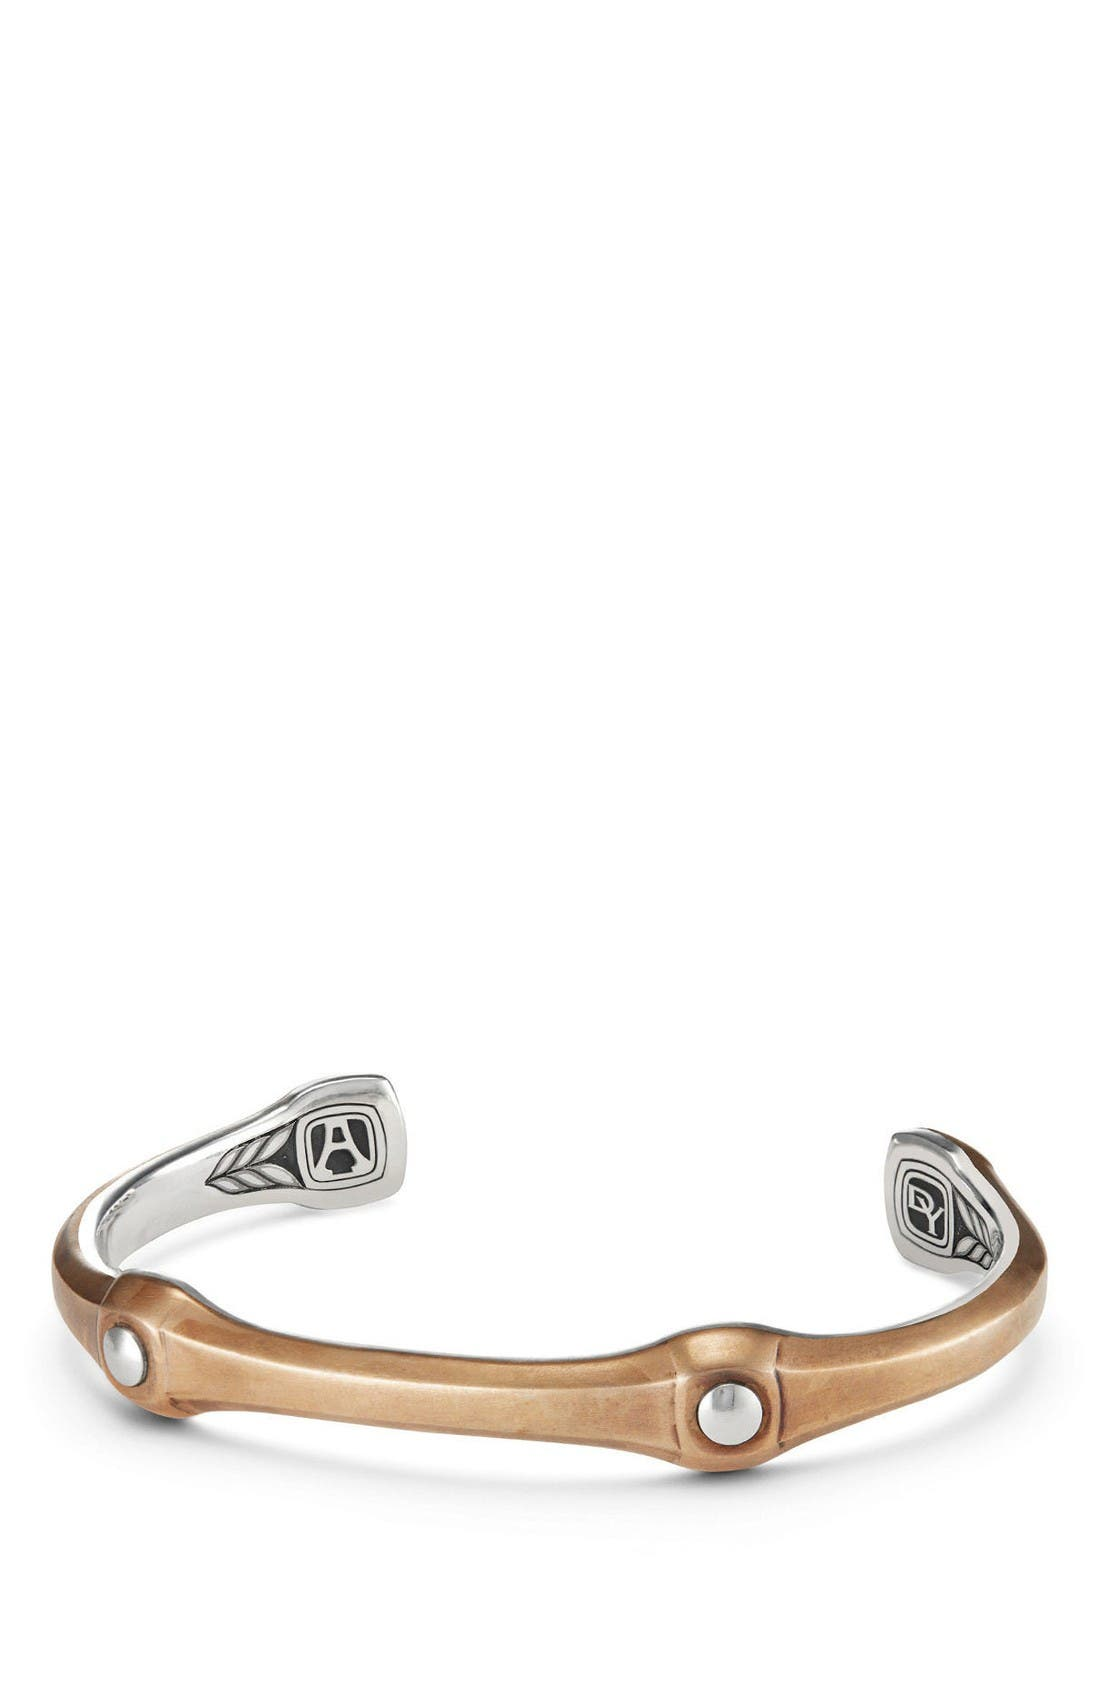 Main Image - David Yurman Anvil Cuff Bracelet, 10.5mm